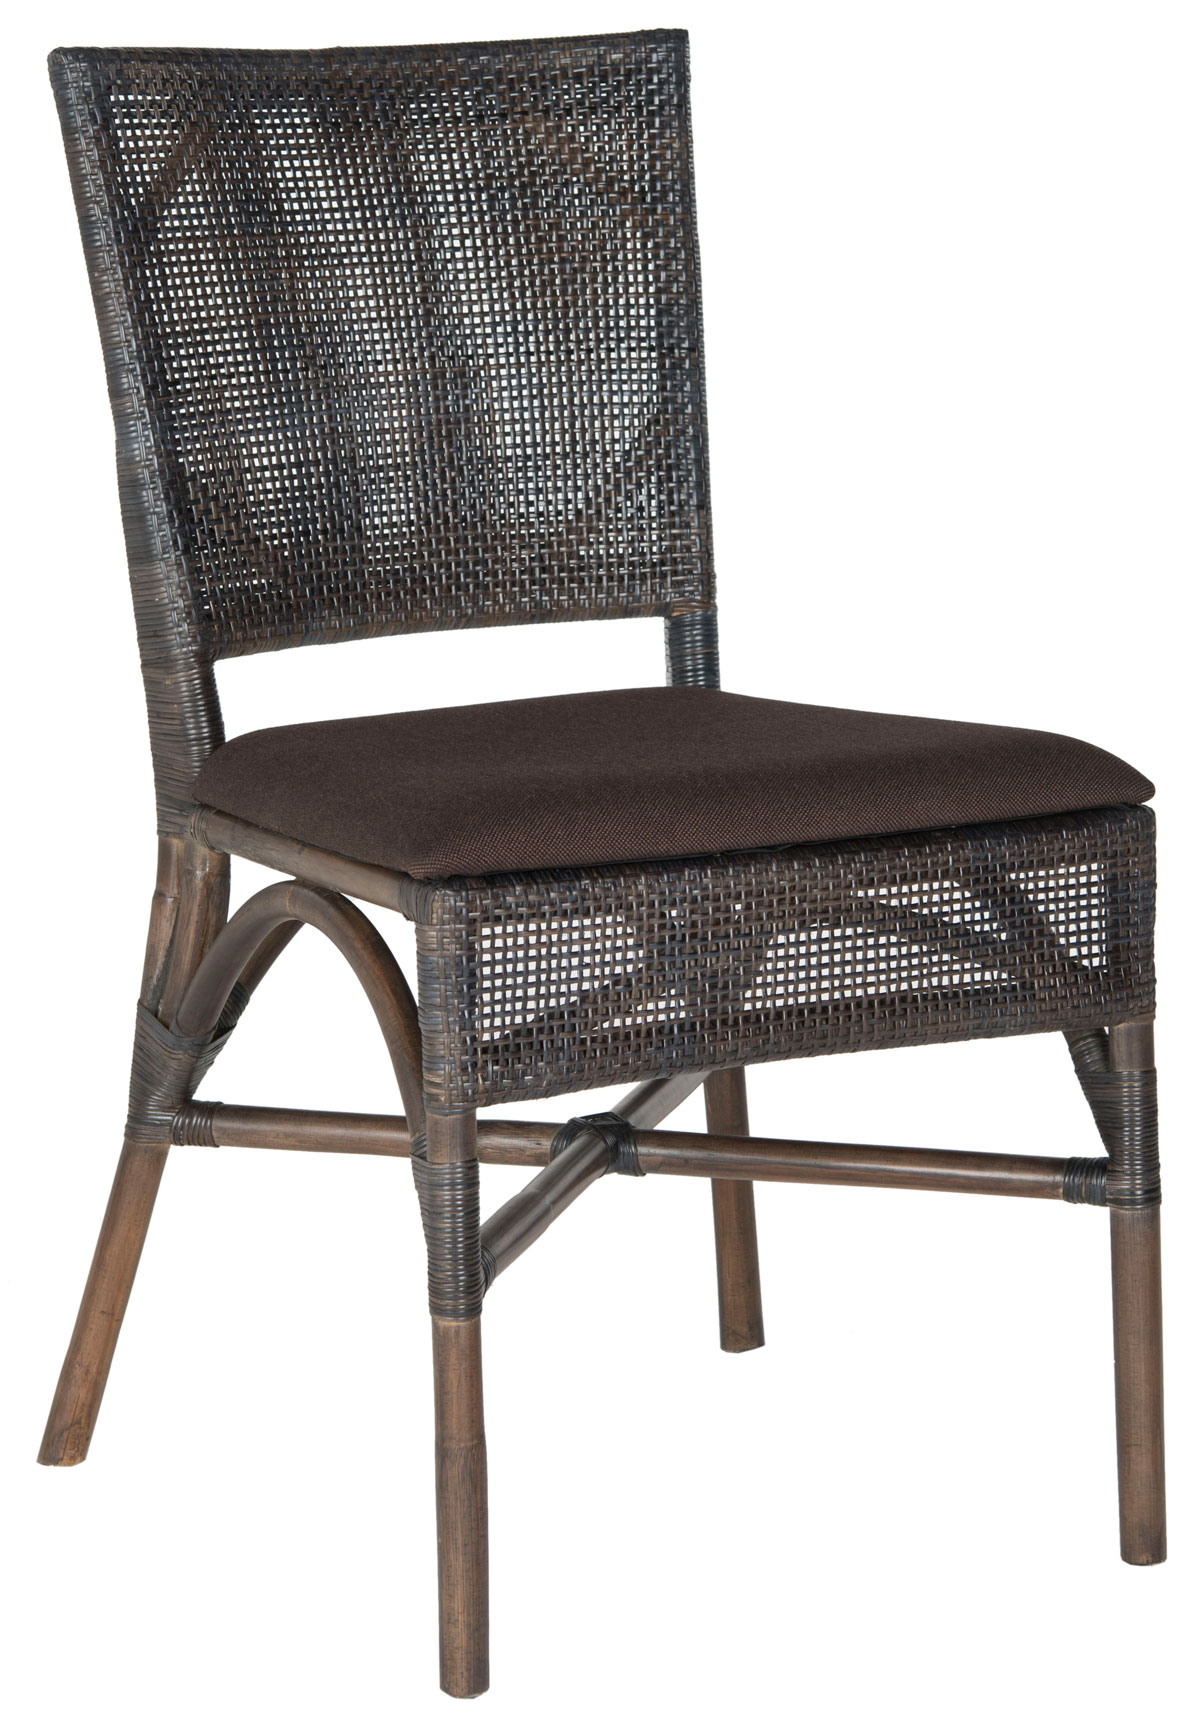 safavieh dining chairs chair cover rentals rockford il sea4007a set2 furniture by